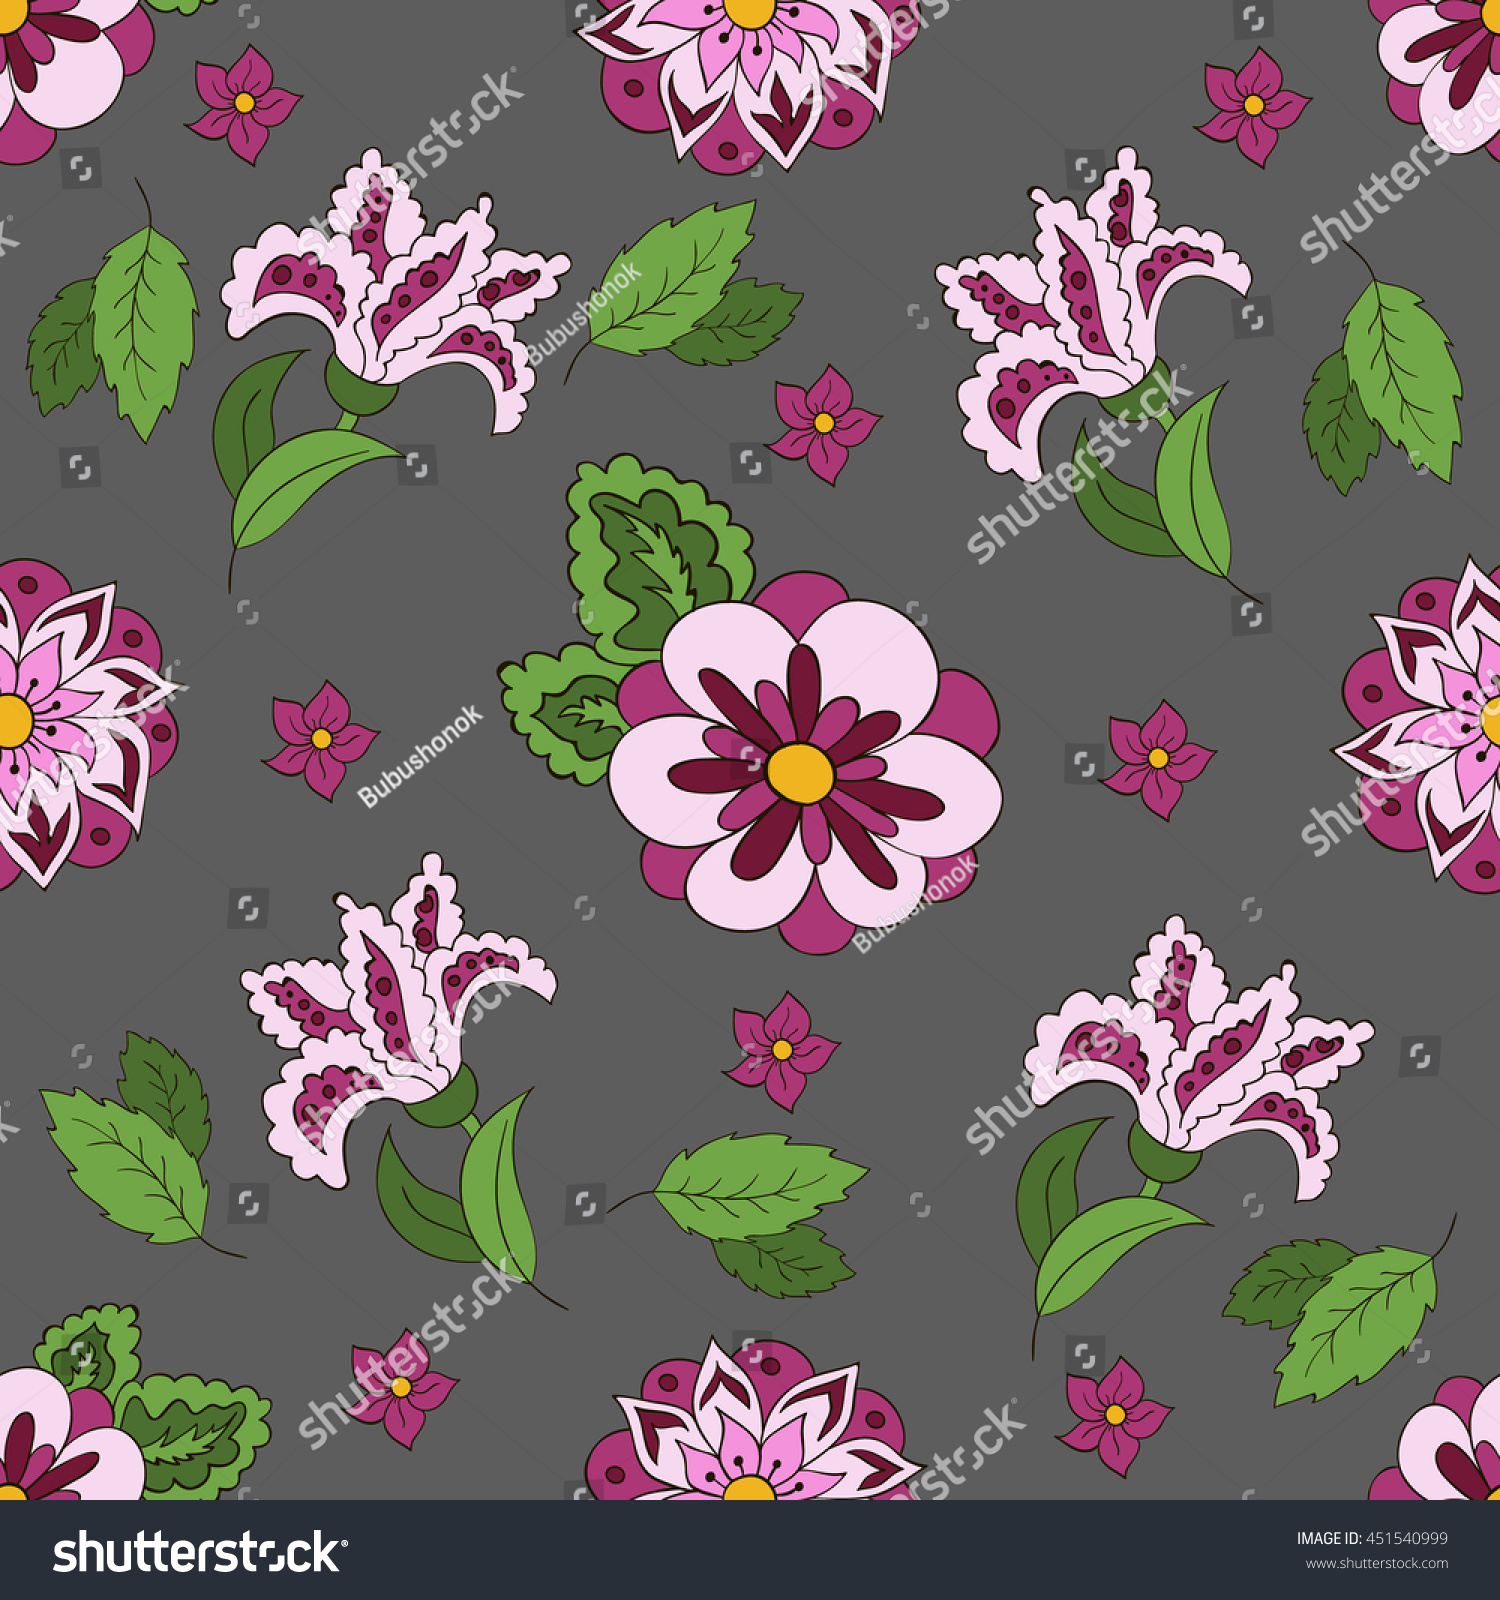 White seamless pattern with spring flowers cover background violet and green colors